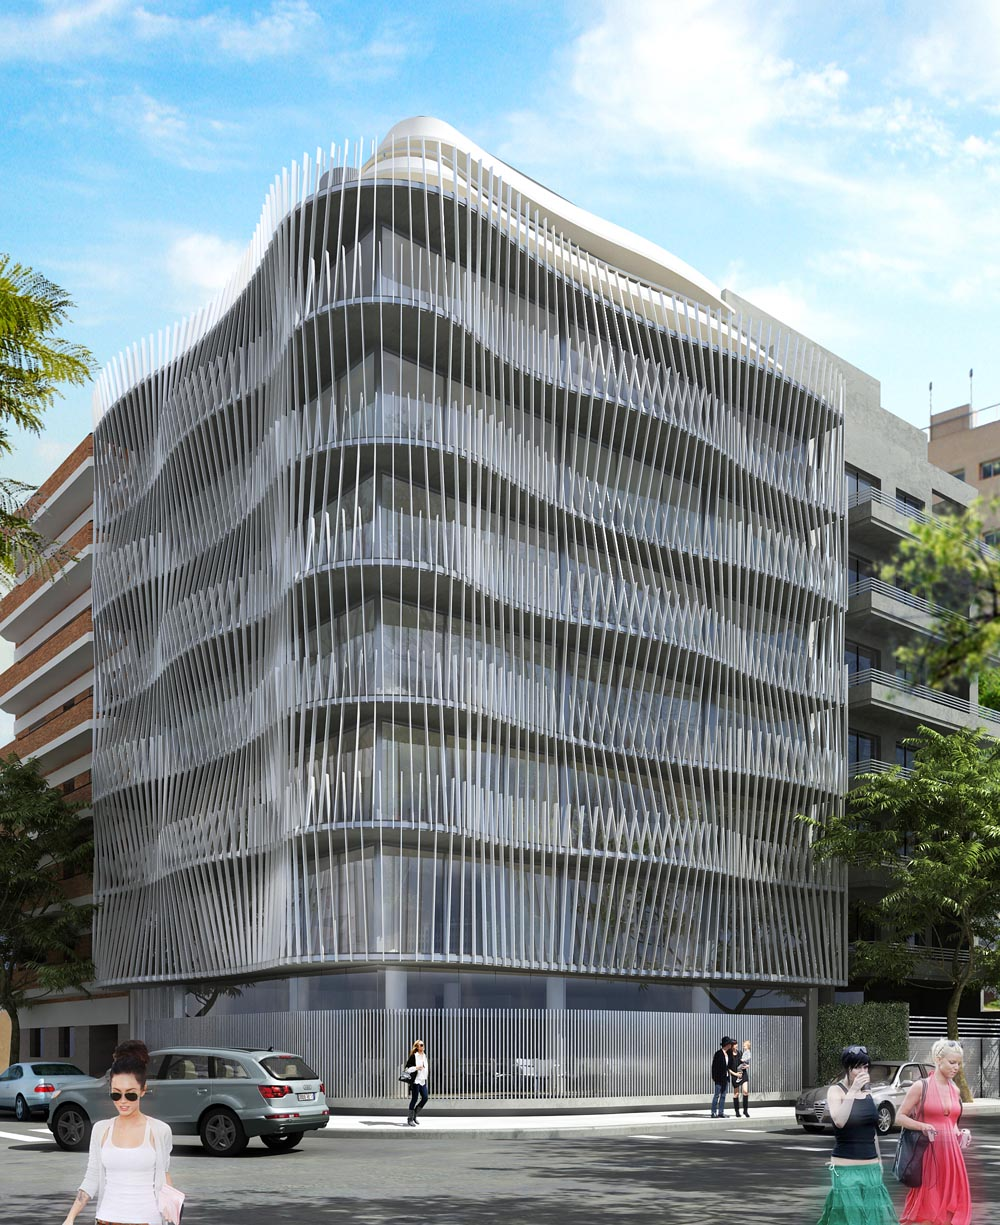 empresas el edificio de oficinas hit3 re ne tendencias de